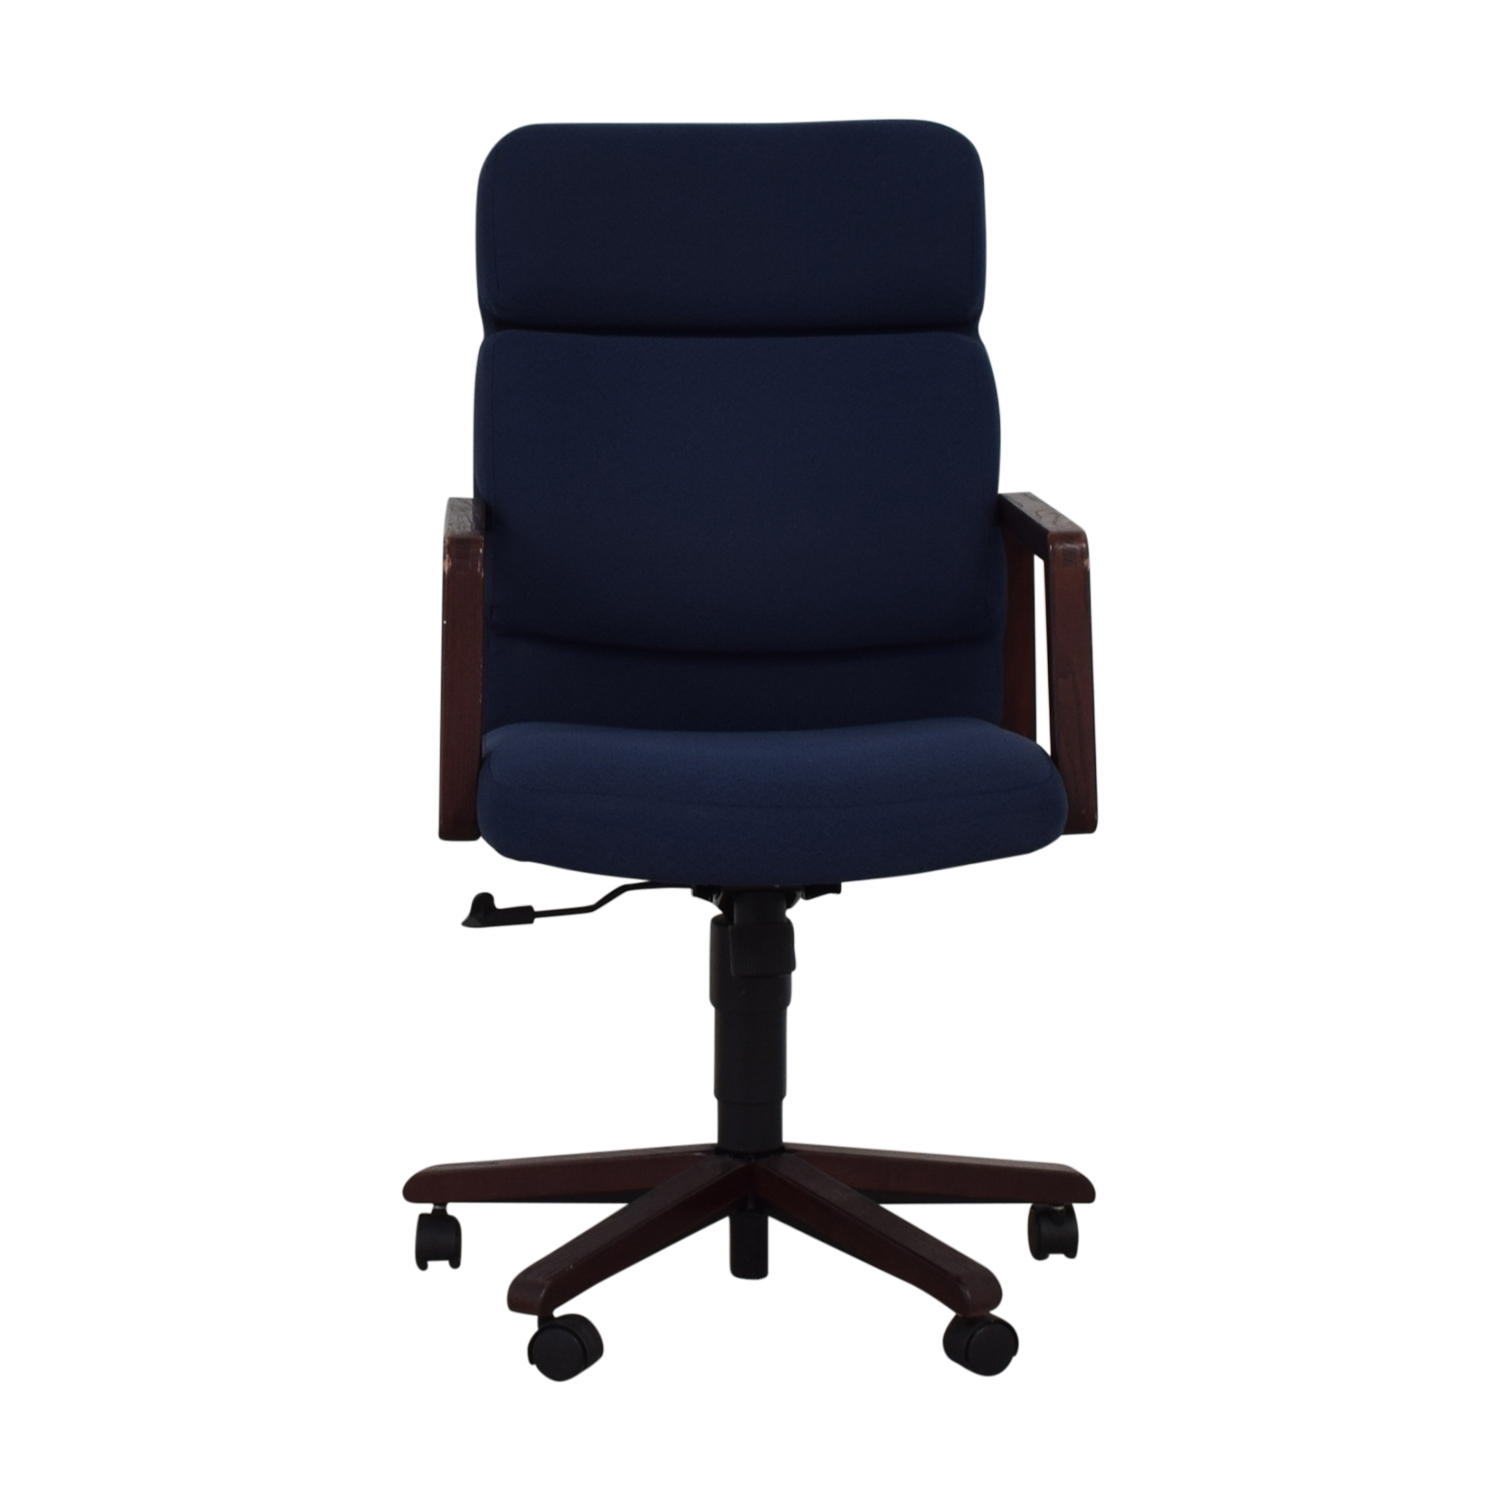 shop Blue Office Chair on Castors